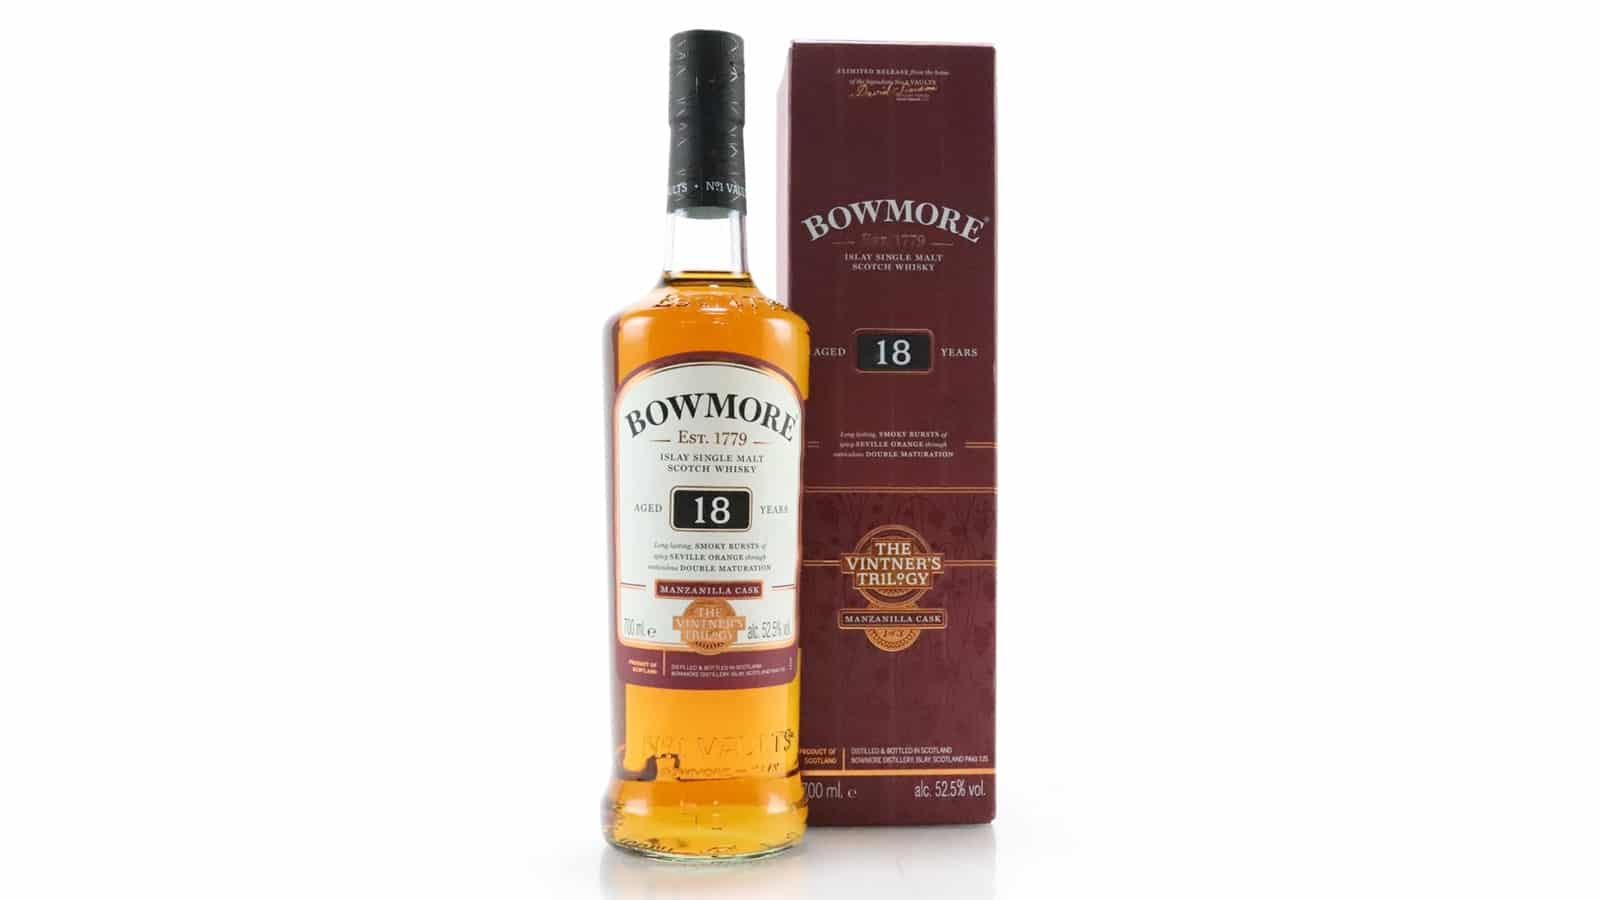 Bowmore 18 Year Old Manzanilla - The Vintner's Trilogy